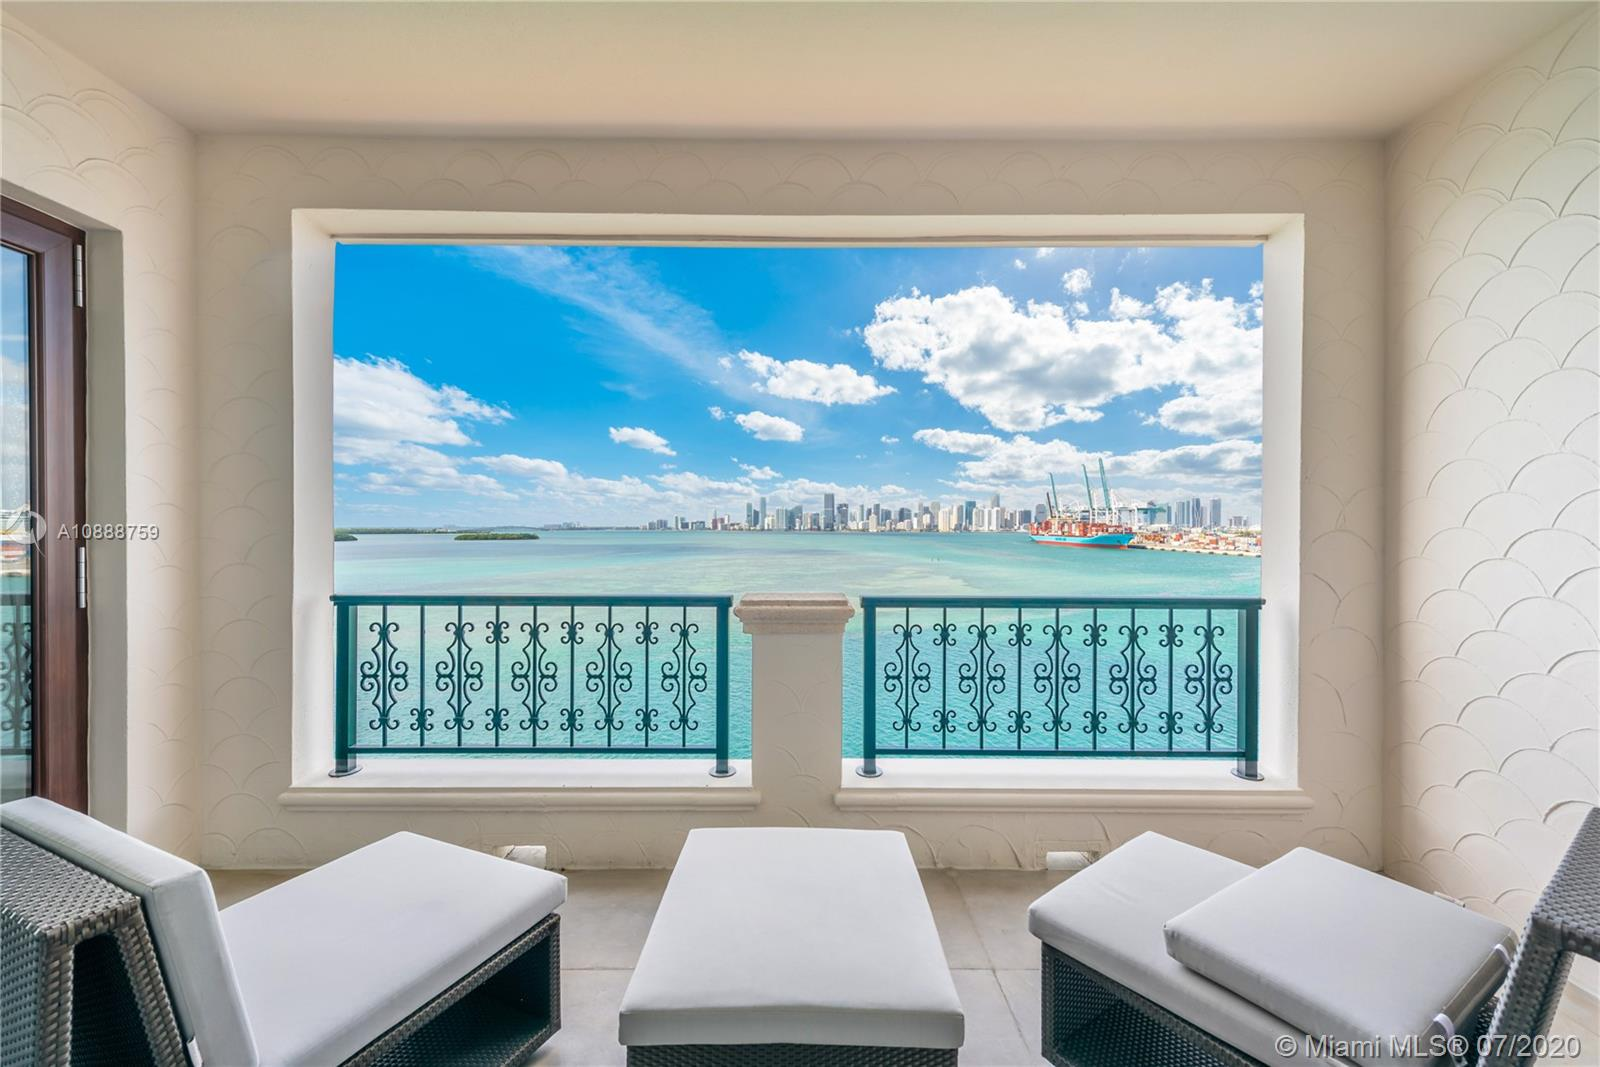 5282 Fisher Island Dr, Unit #5282 Luxury Real Estate